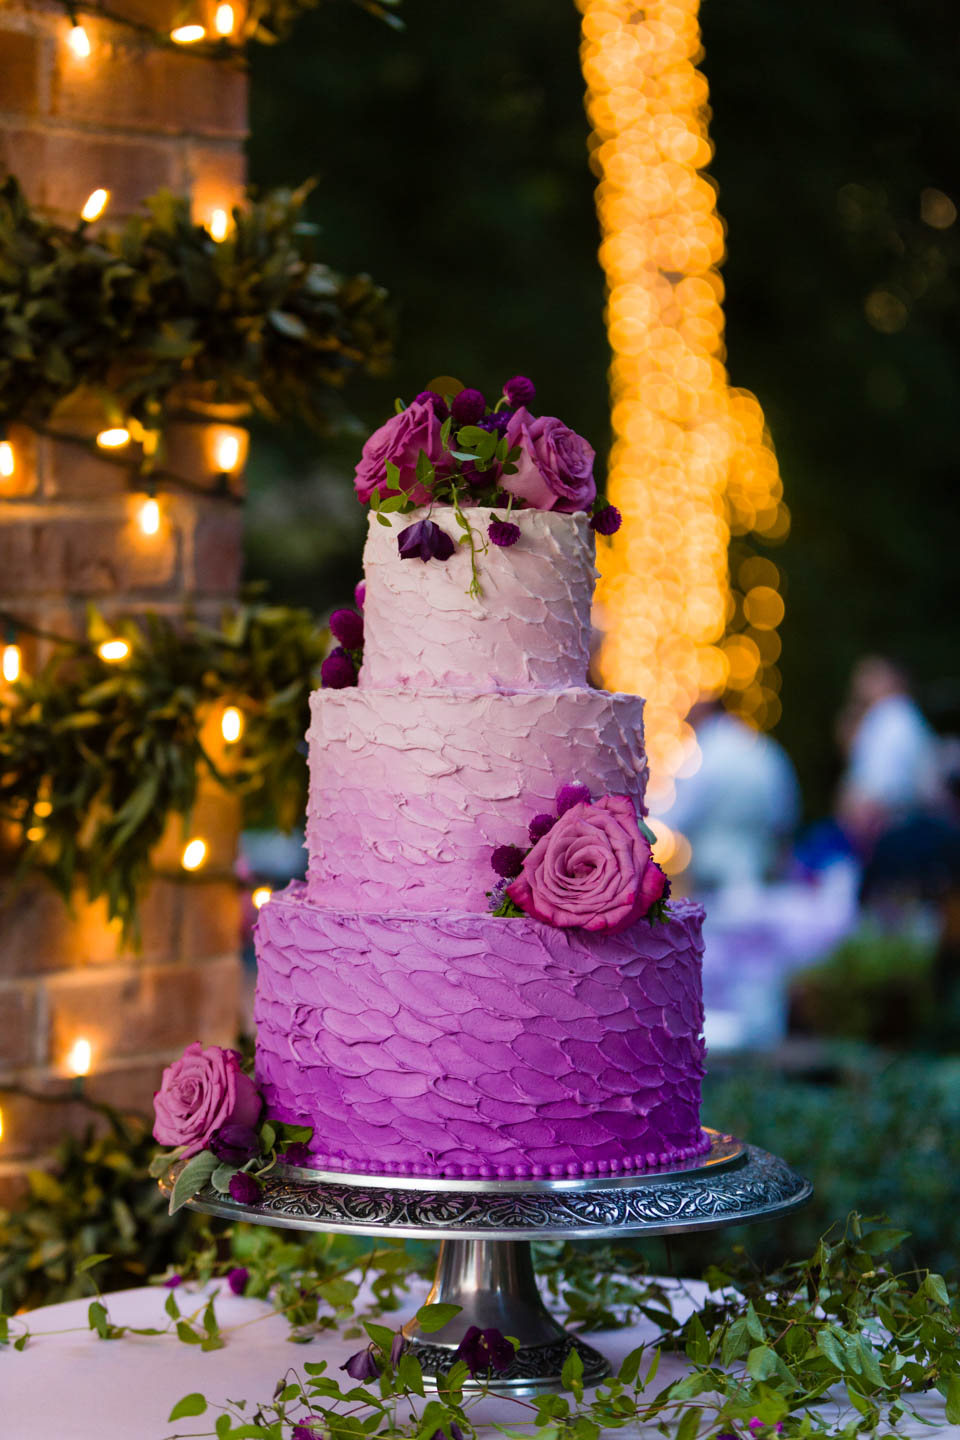 Wedding cake at night with Christmas lights